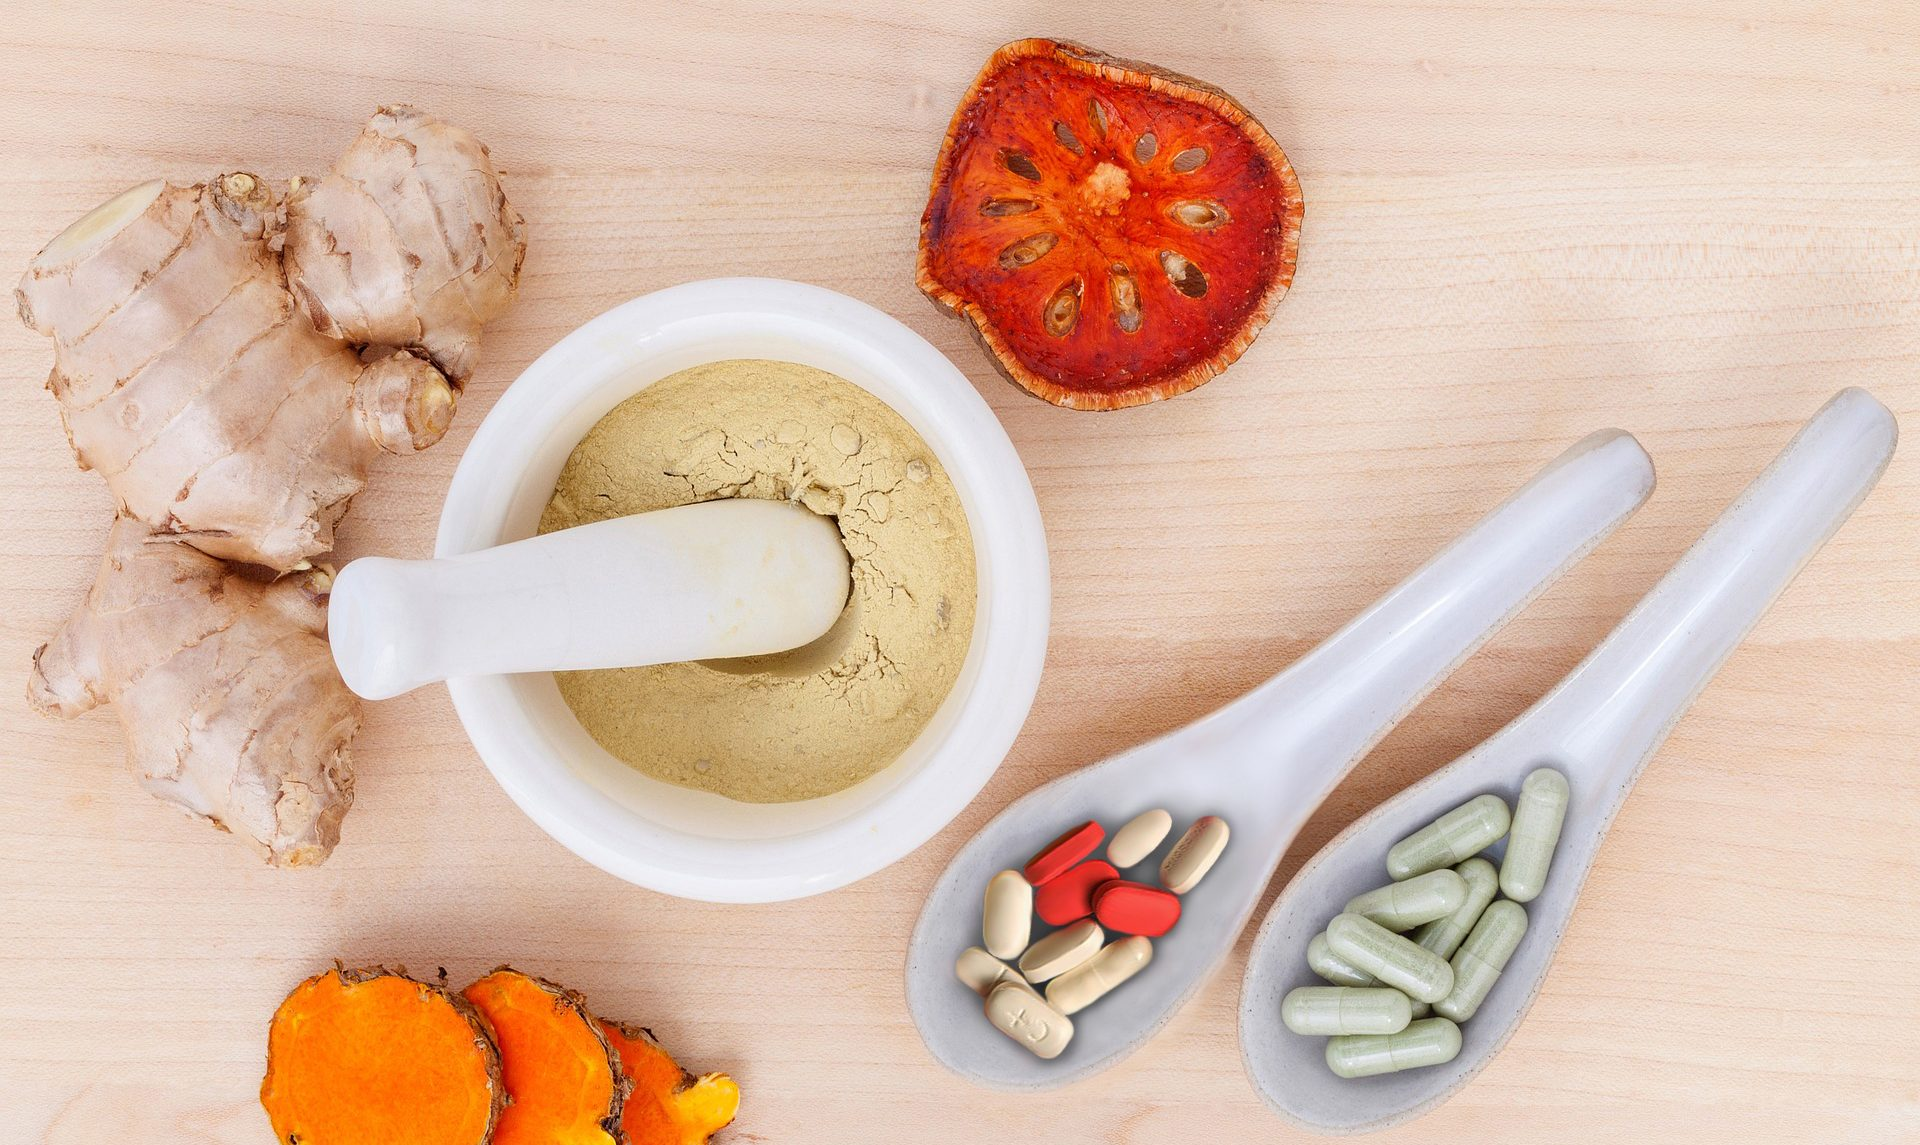 image of pills, supplements, ginger, and some other health ingredients on a wooden background